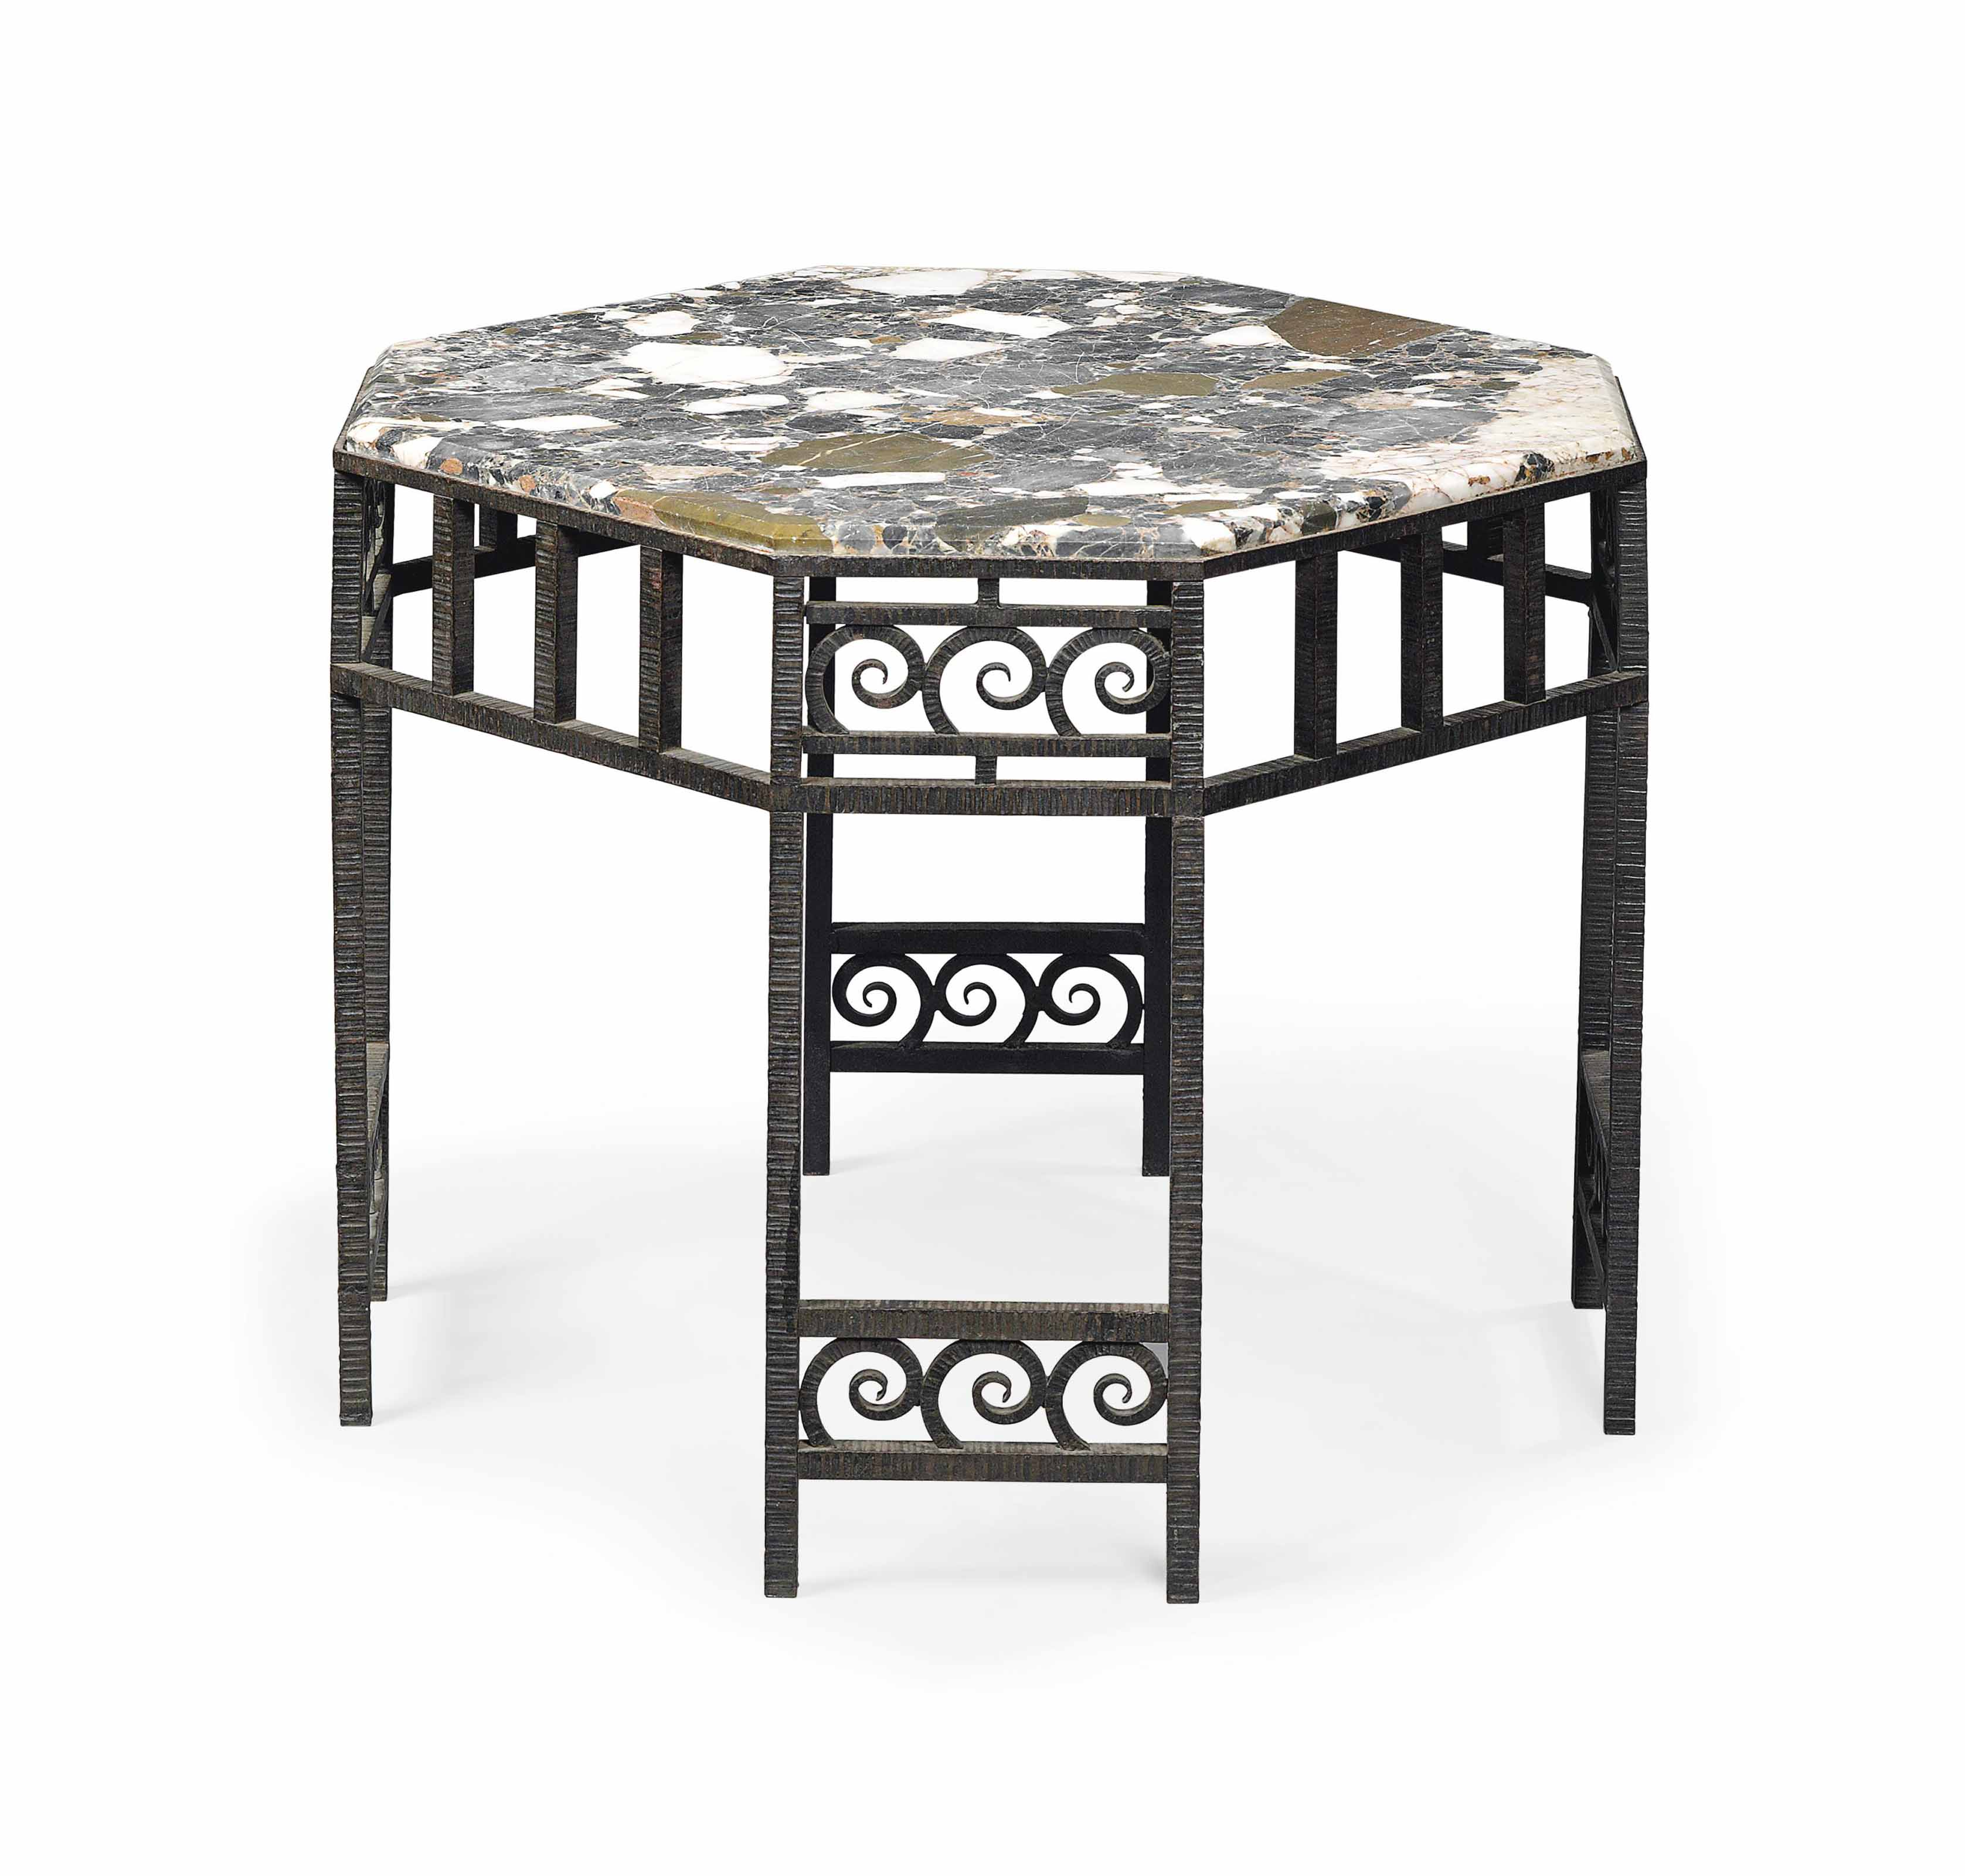 New York Marble Coffee Table: AN ART DECO WROUGHT-IRON AND MARBLE COFFEE TABLE , CIRCA